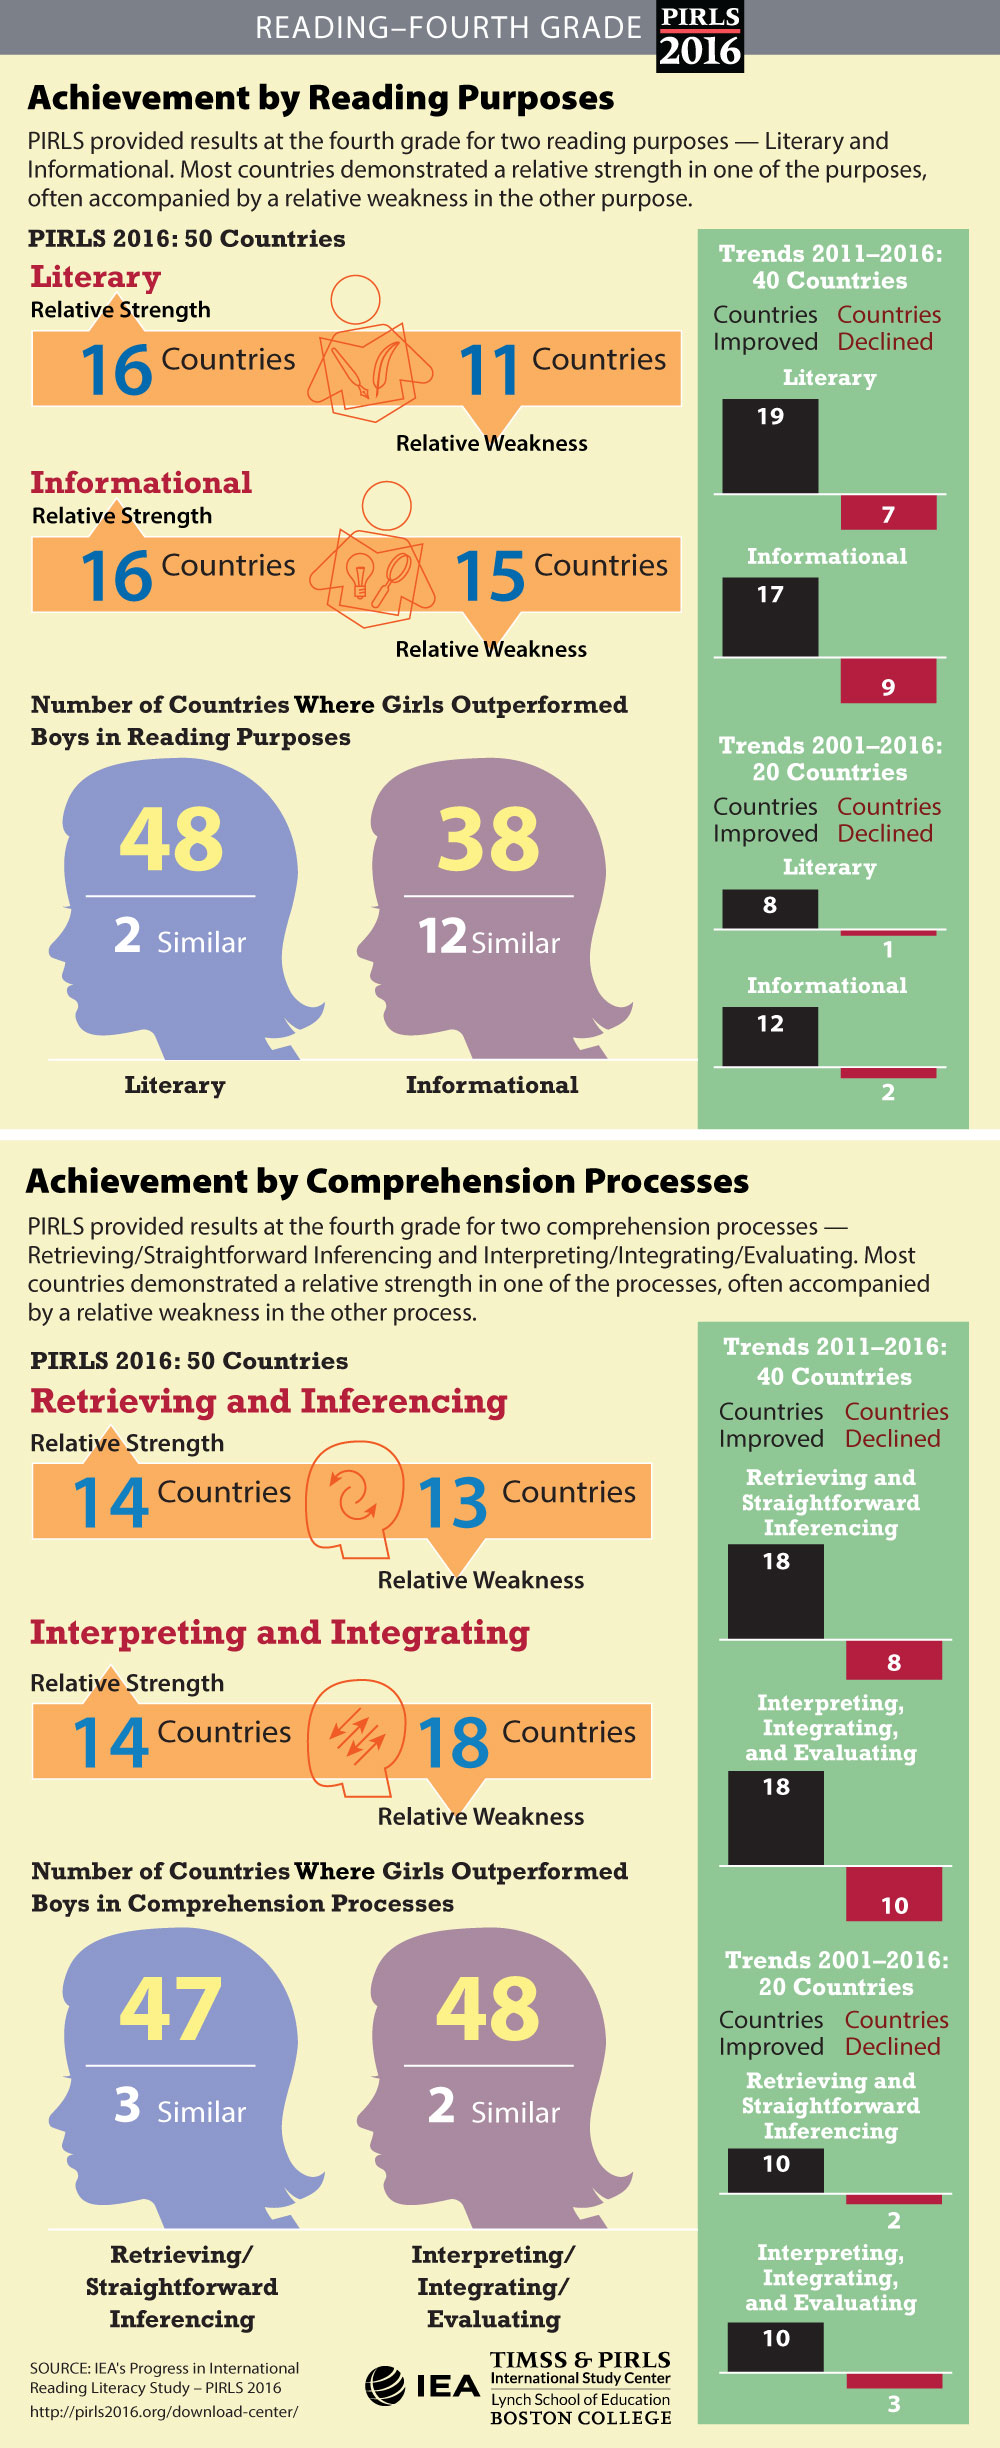 Achievement in Reading Purposes and Comprehension Processes Infographic